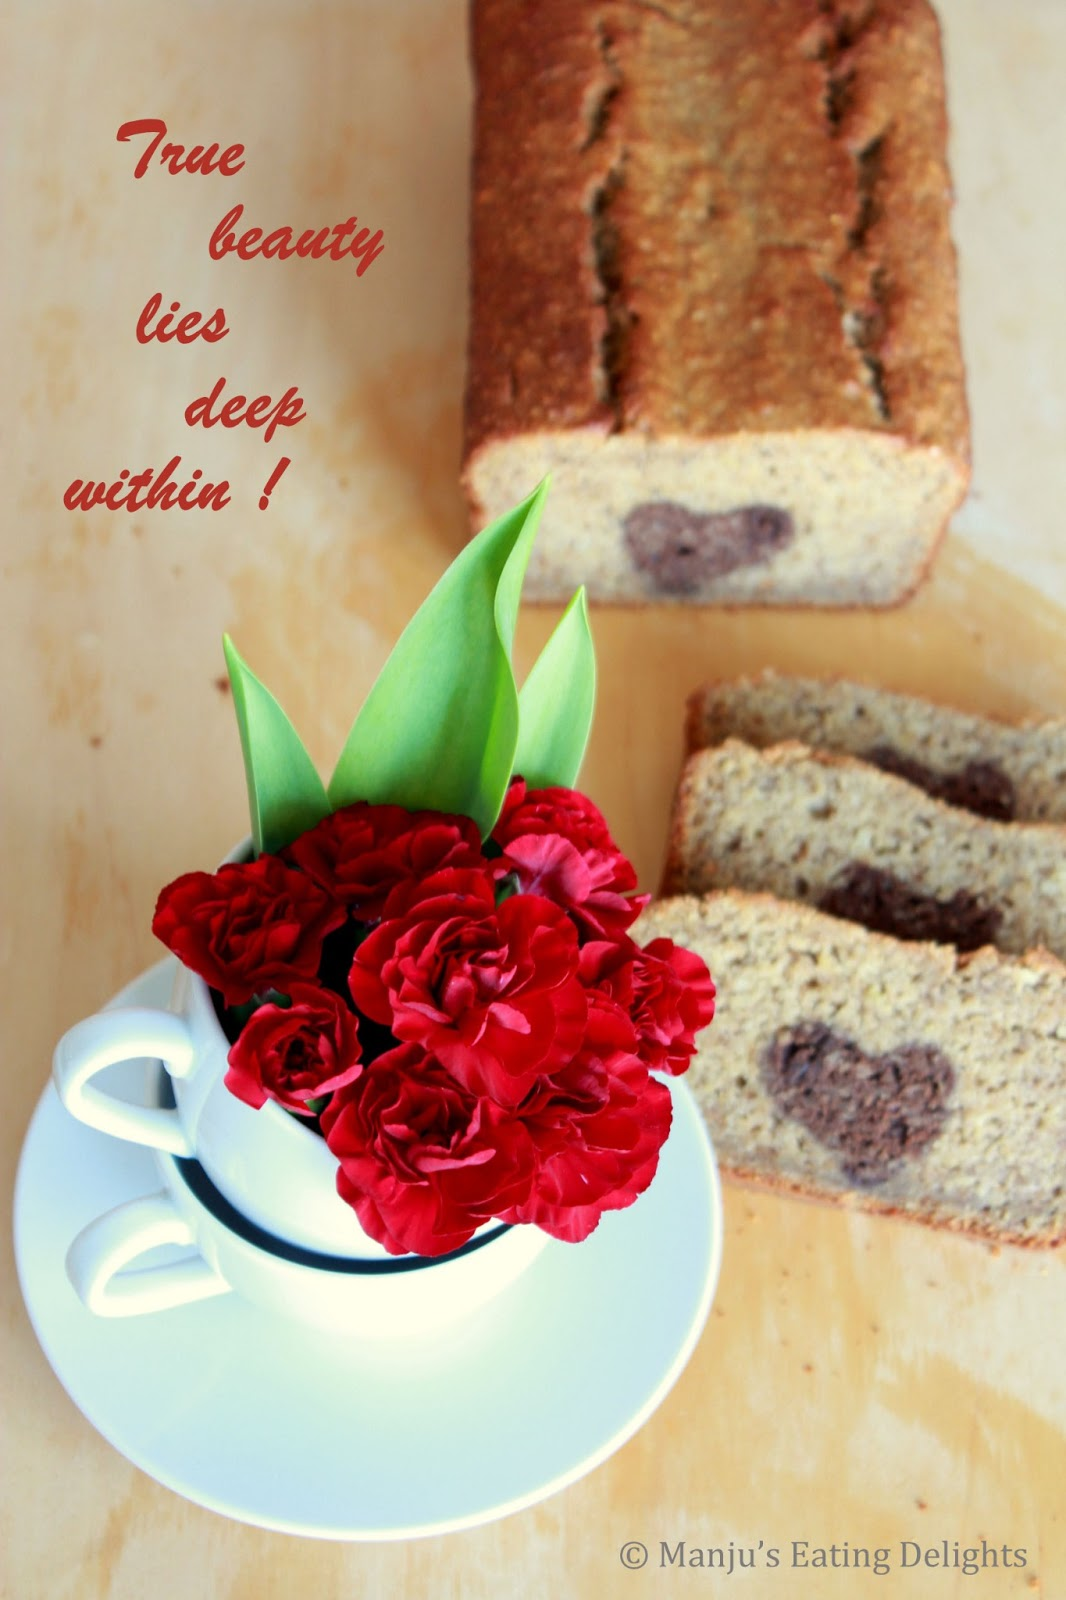 Manju S Eating Delights Banana Bread With A Heart A